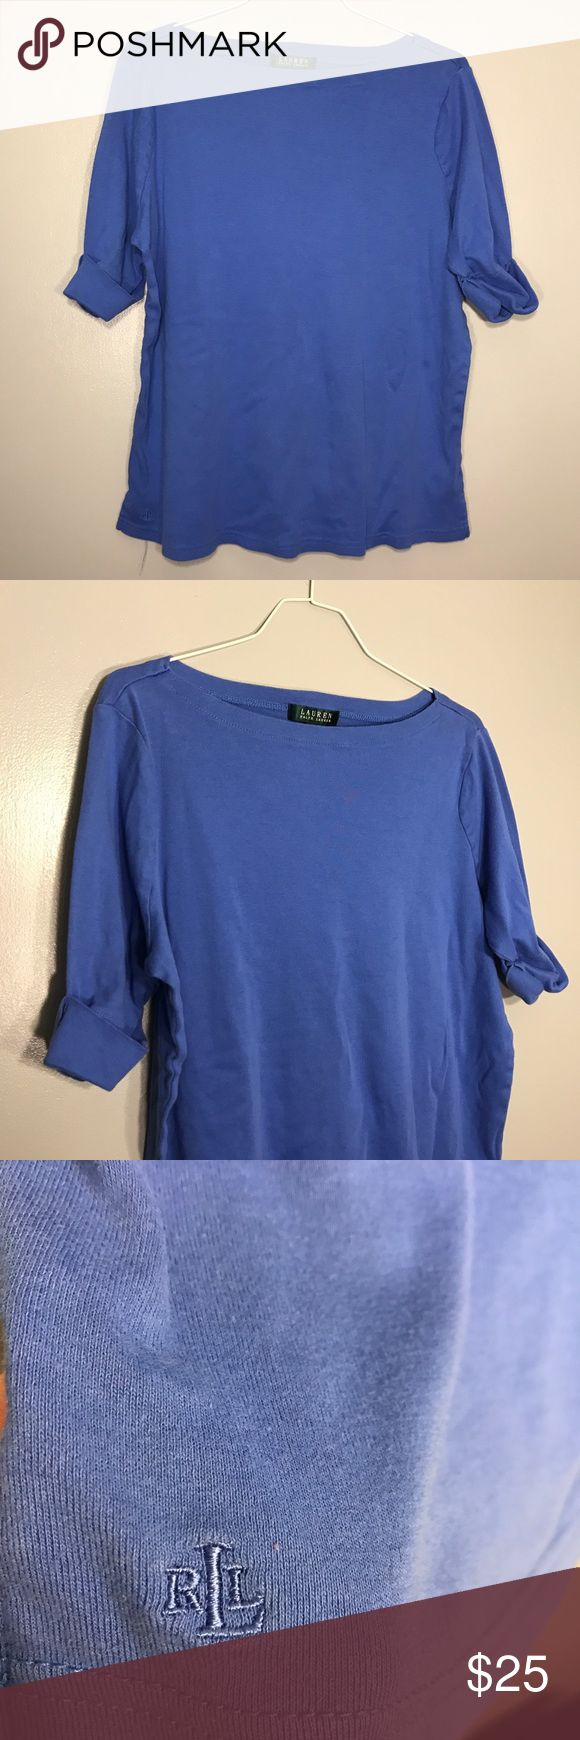 "[Lauren Ralph Lauren] Half Sleeve Royal Blue Shirt Lauren Ralph Lauren Royal Blue Half Rolled Sleeve Top. Excellent Condition. No Flaws. Size 1X. Bust-22"" Length-24"" Lauren Ralph Lauren Tops Tees - Long Sleeve"